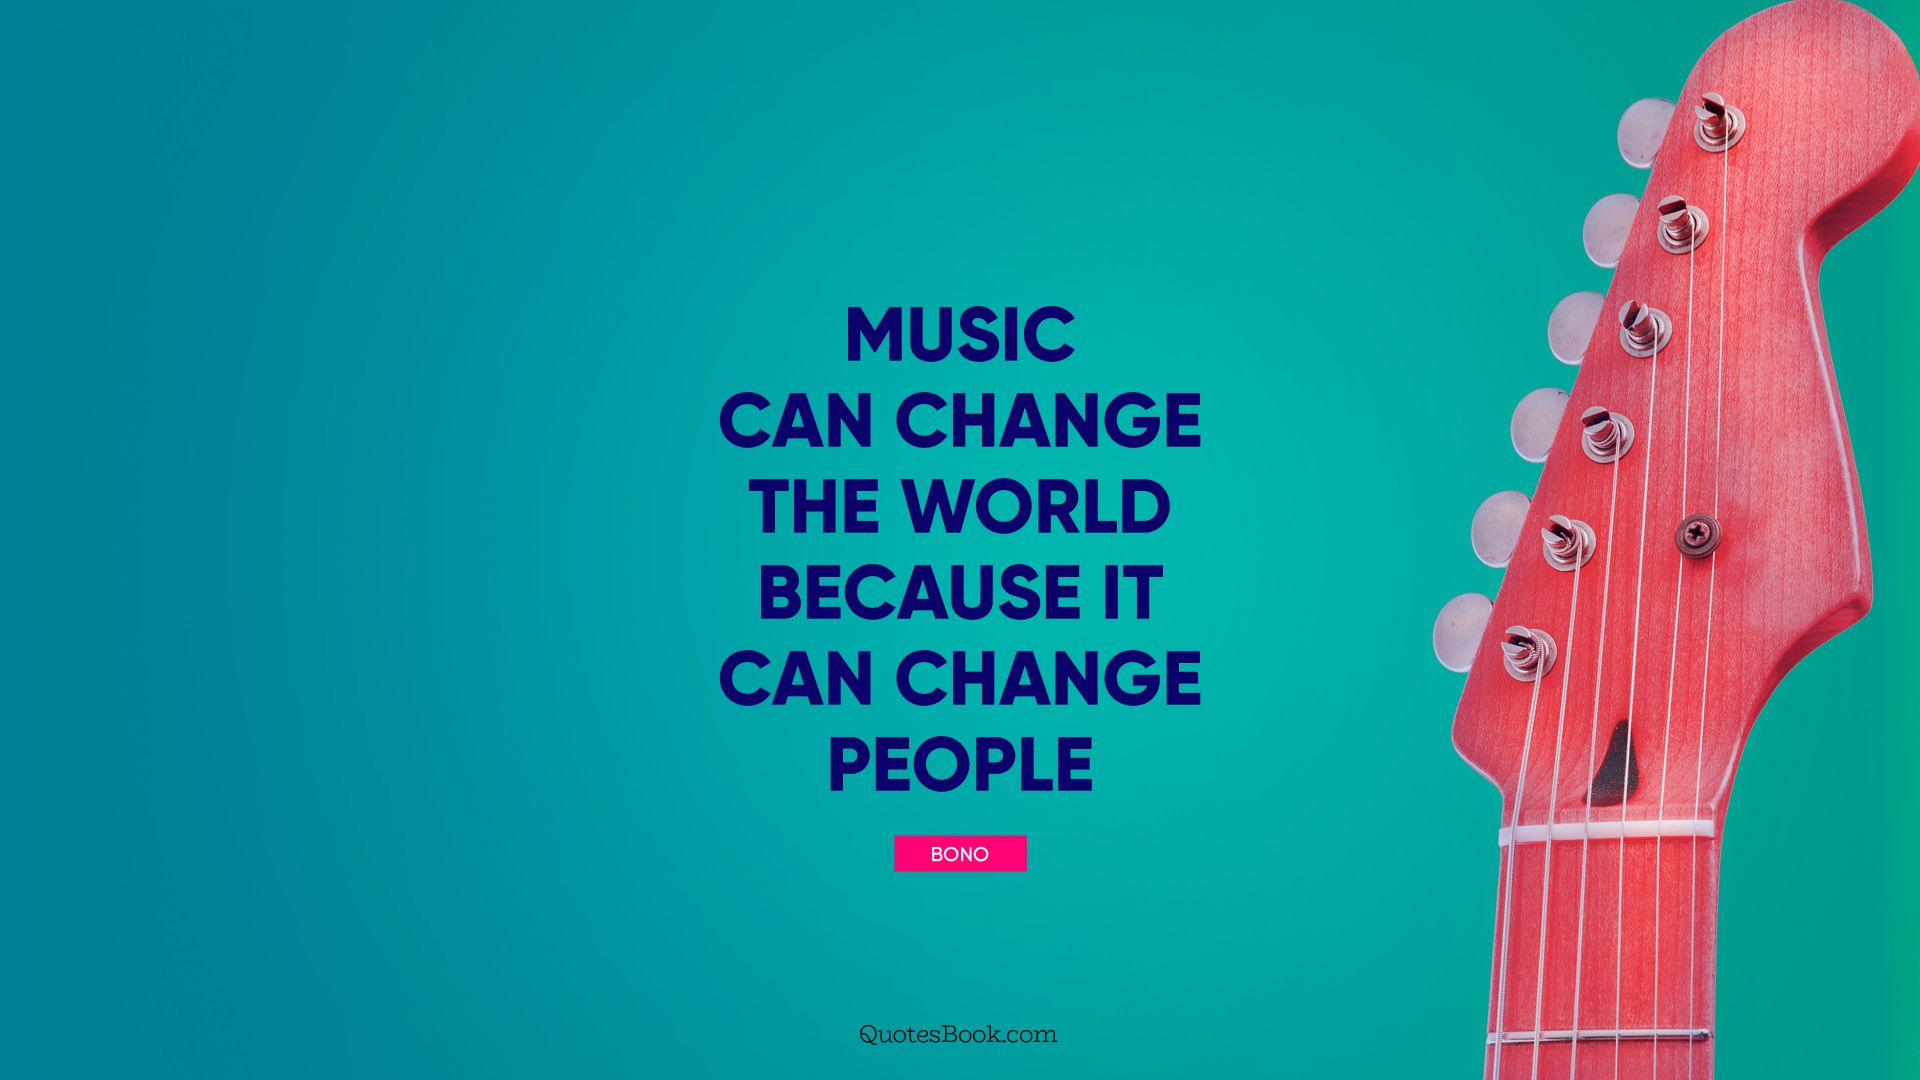 Music can change the world because it can change people. - Quote by Bono